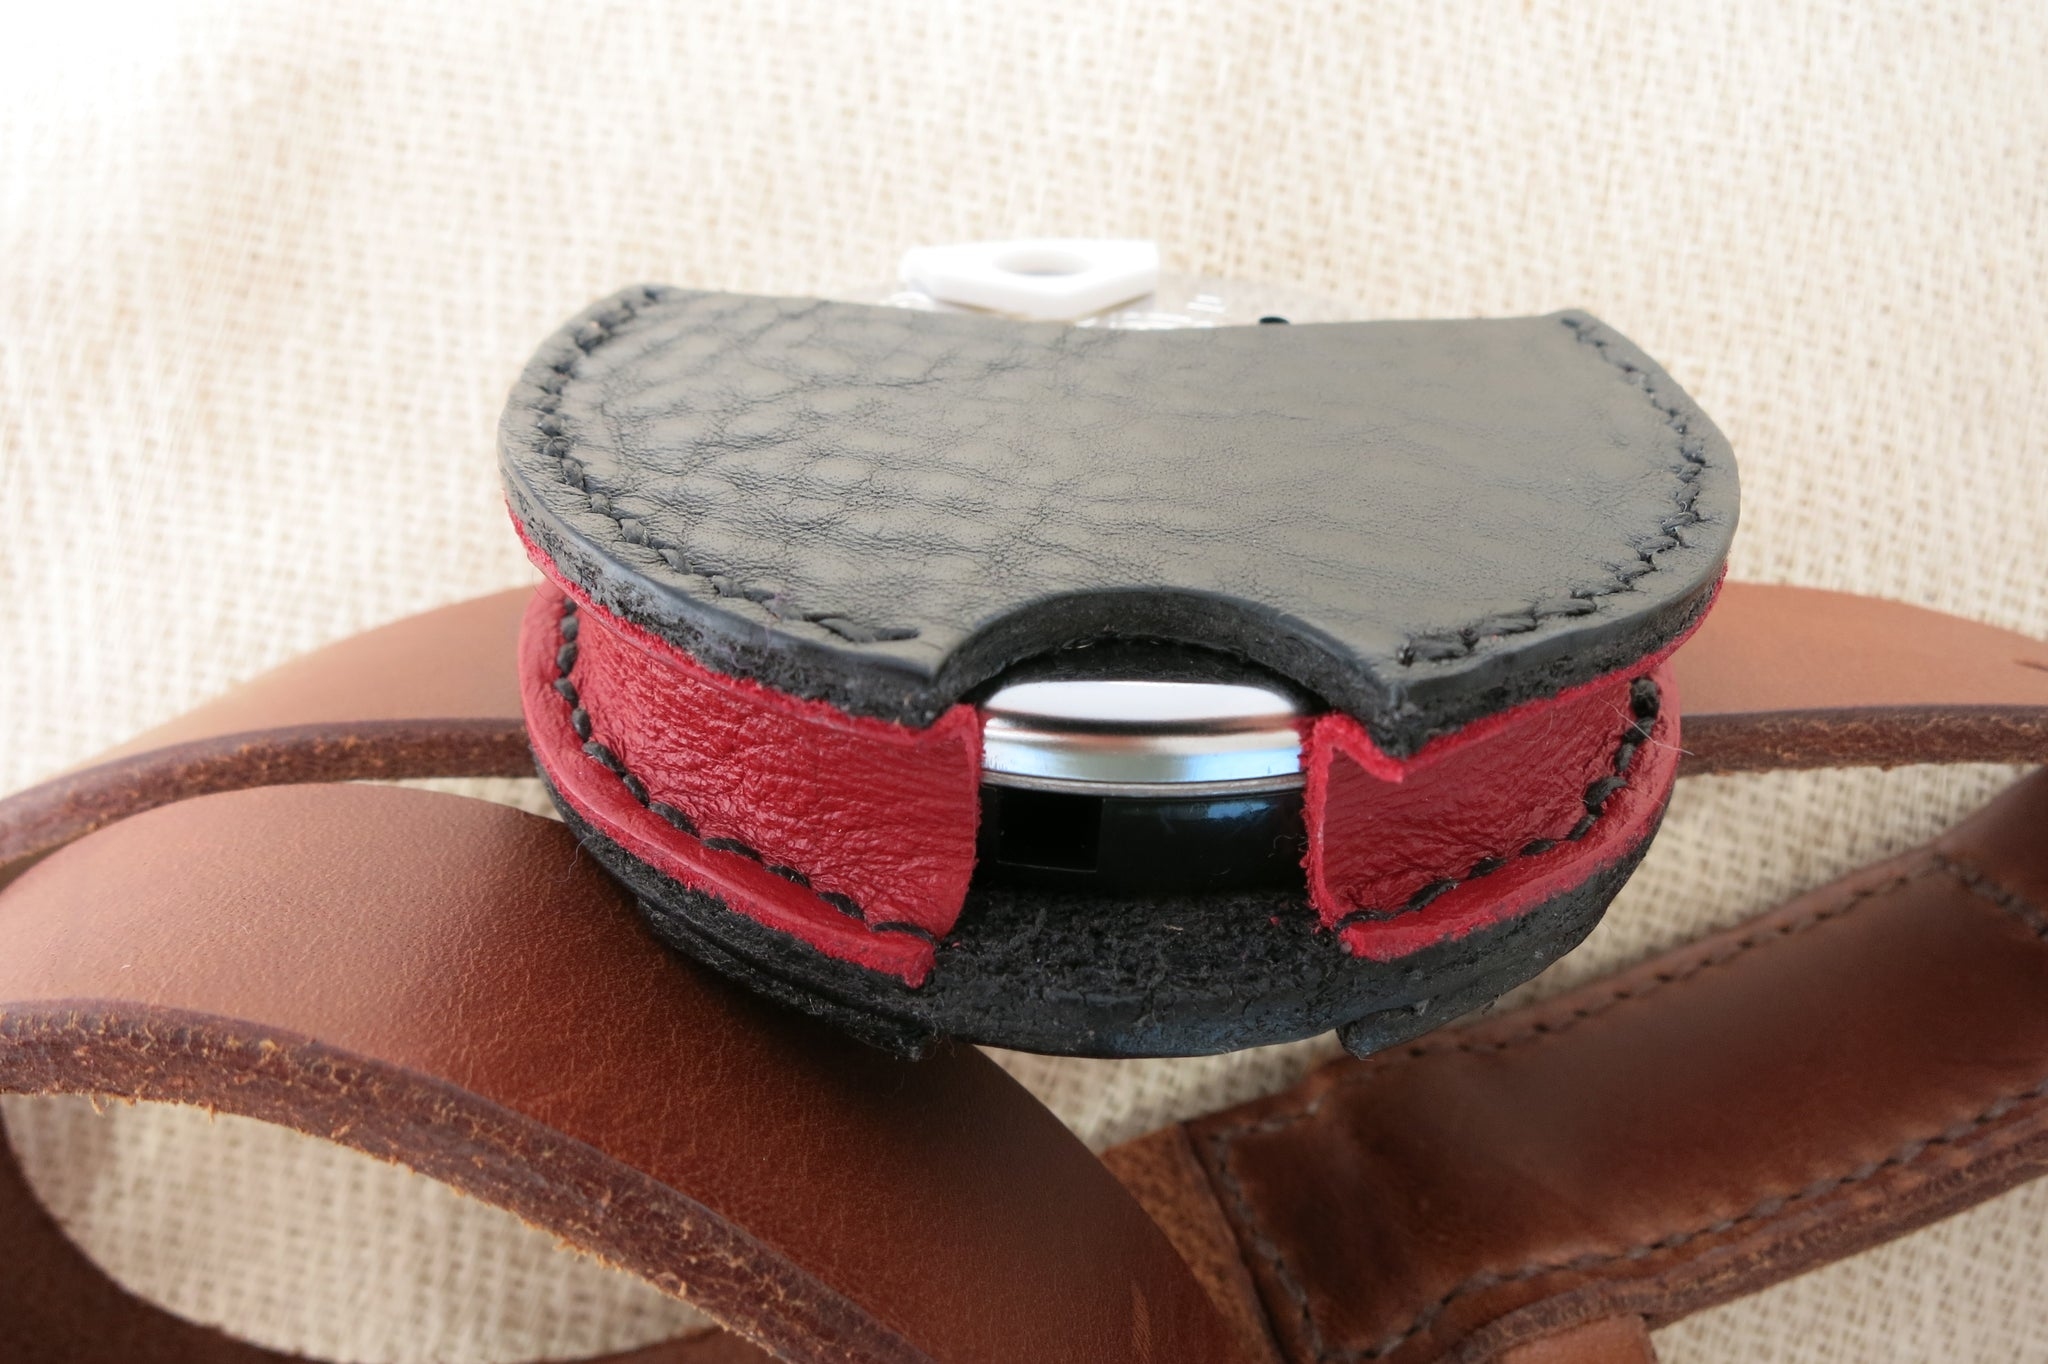 Hand-stitched leather pitch pipe holster